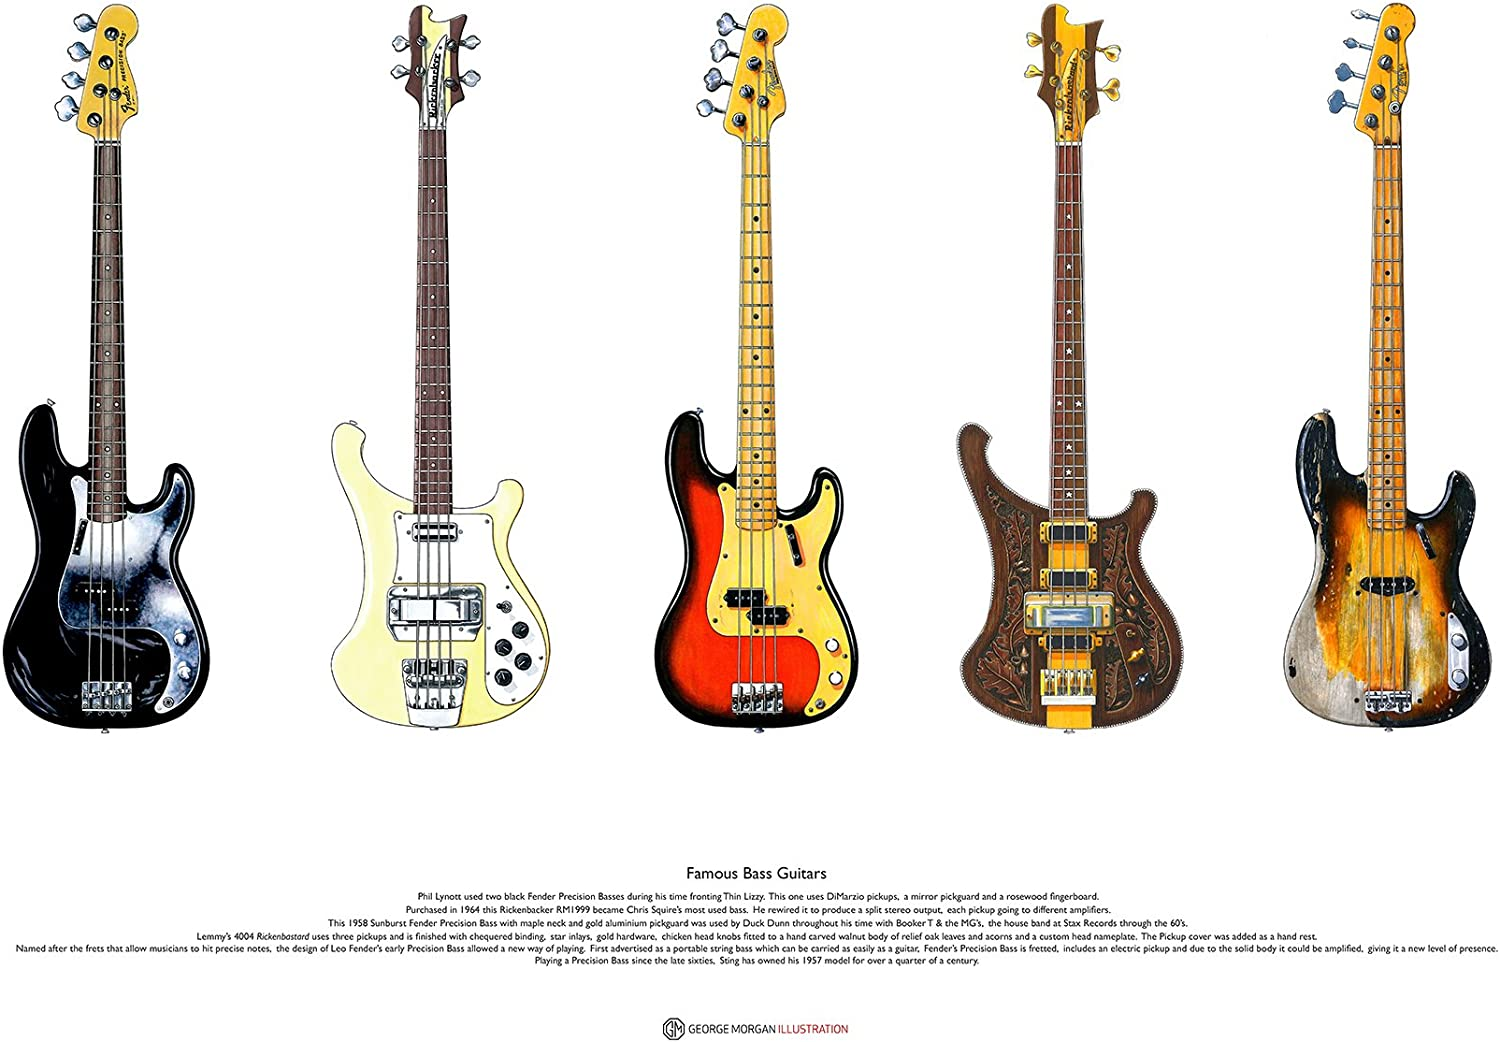 George Morgan Illustration Guitarras Bajas Famosas # 2 AFFICHE D ...